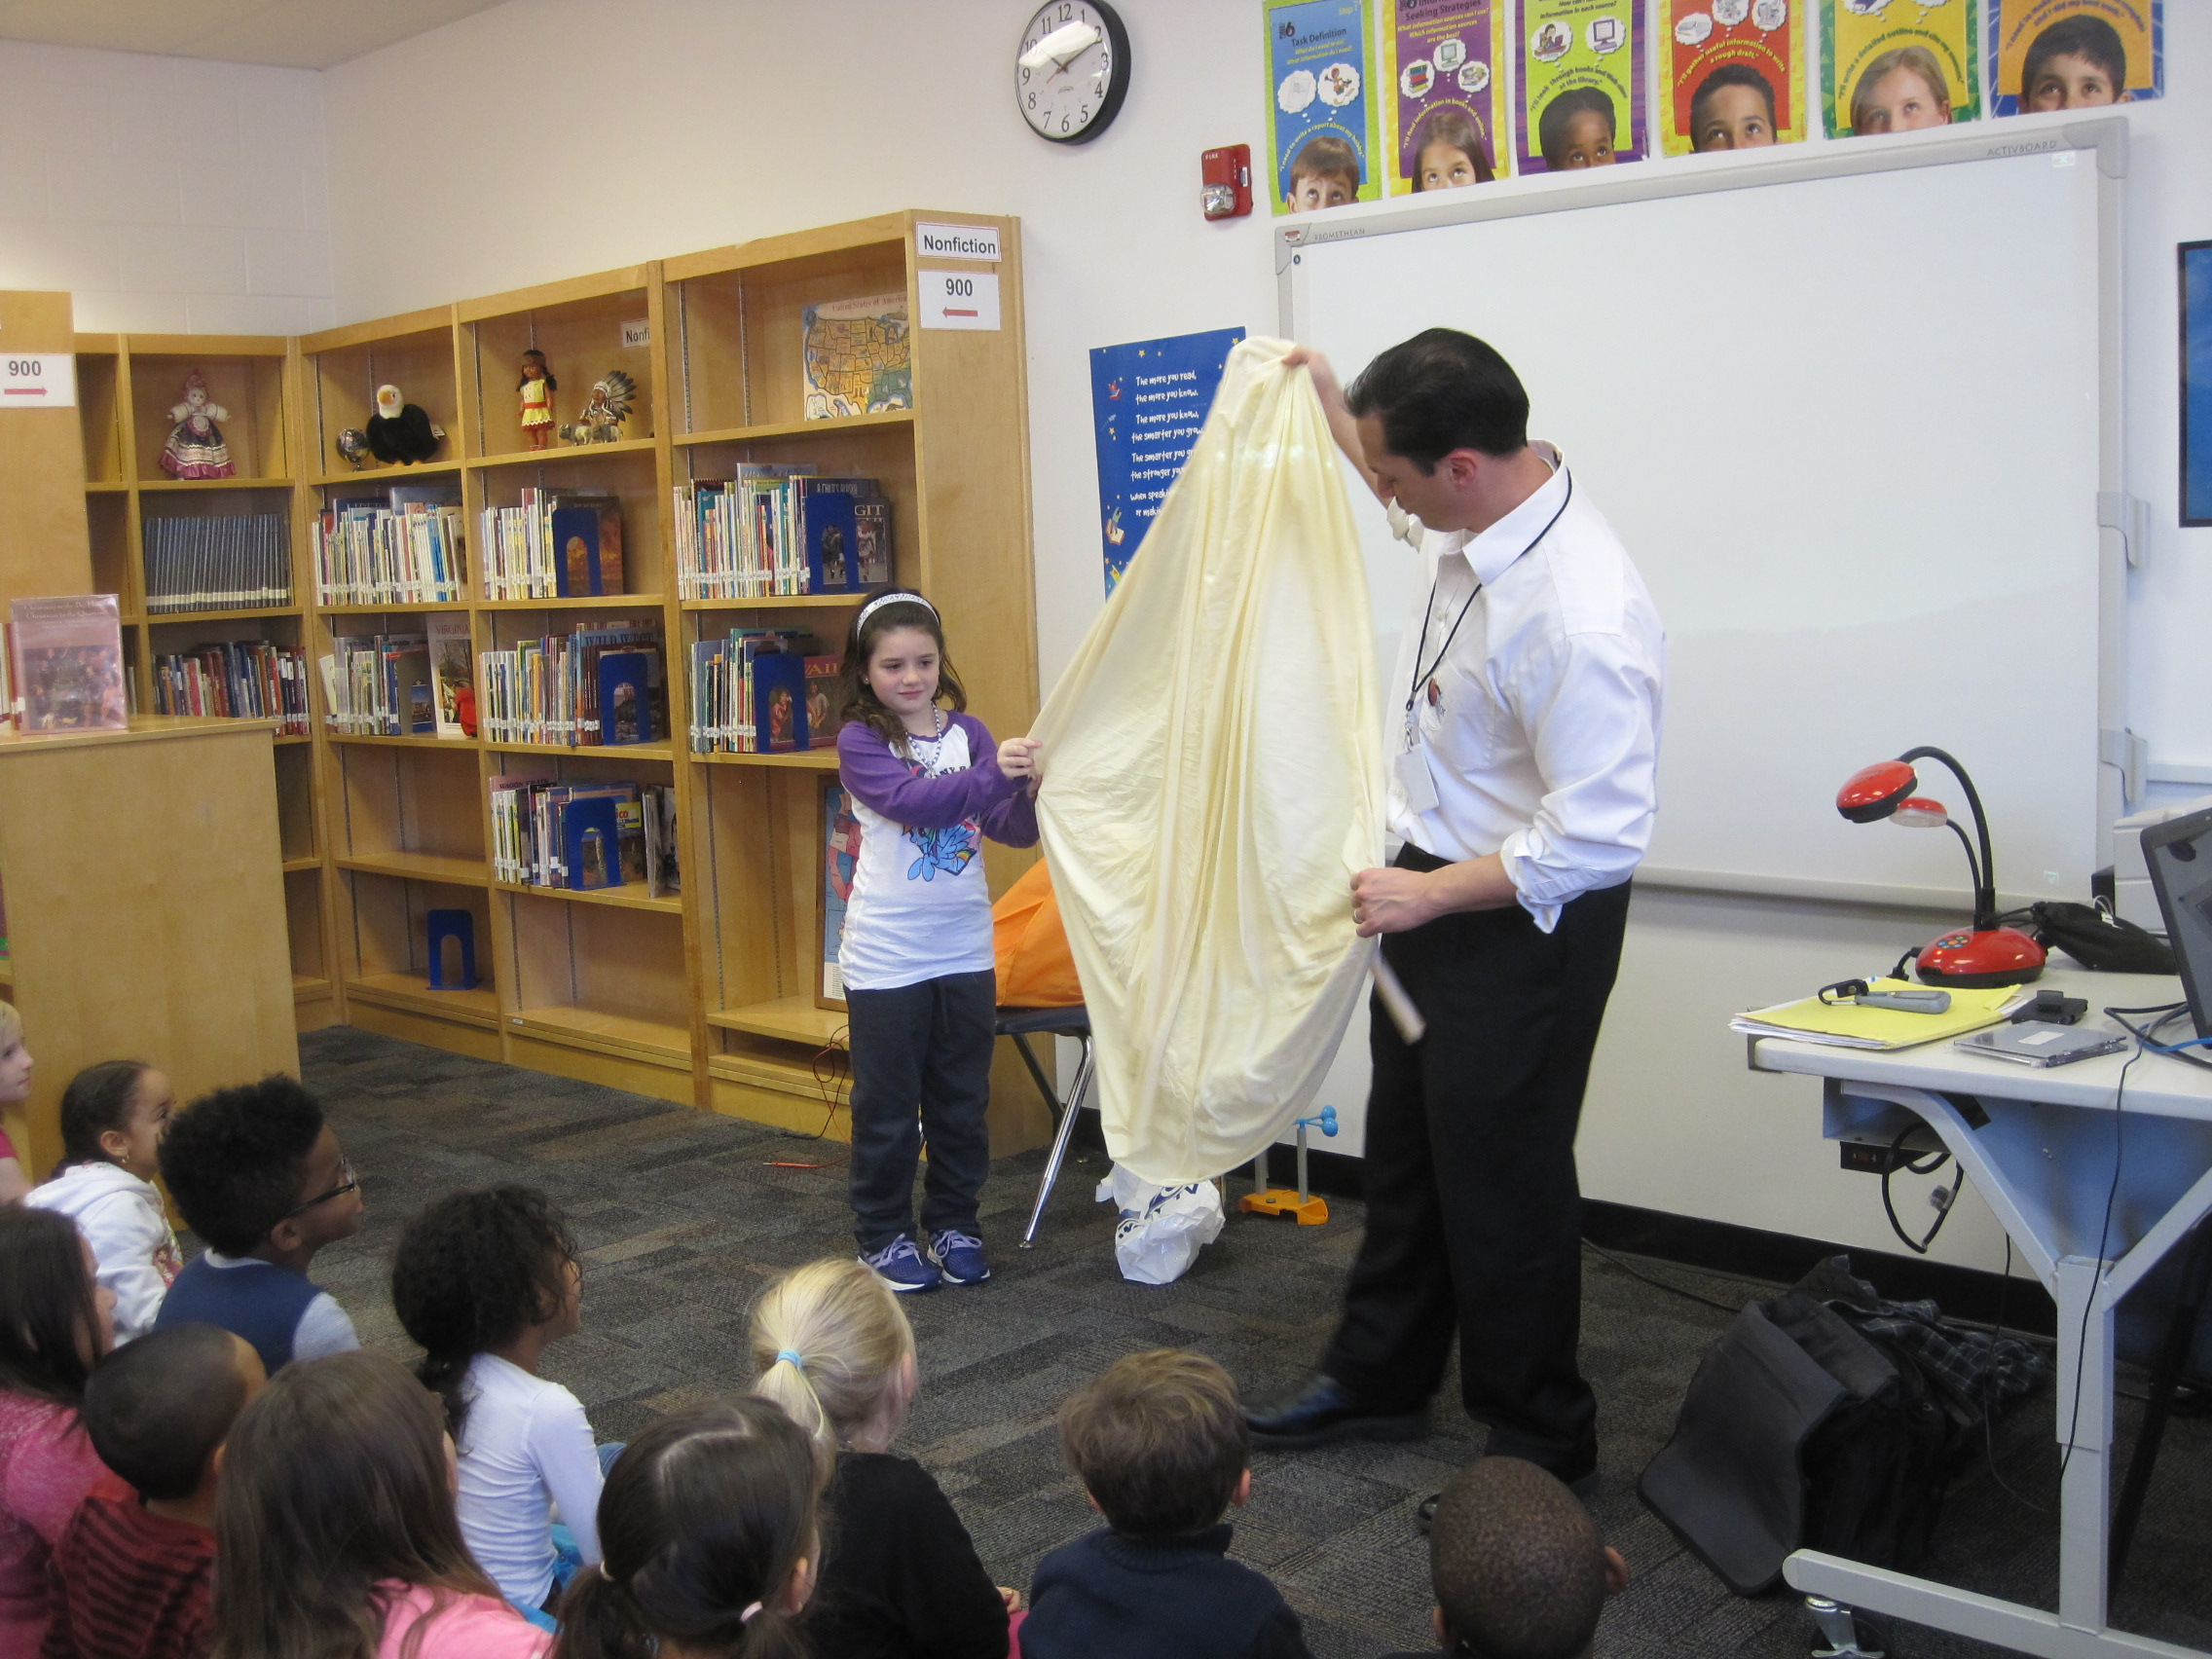 WAVY TV 10 meteorologist Jeremy Wheeler recently visited second grade classes at Bayside Elementary. He talked about weather forecasting, explained the use of weather instruments, and showed exciting video excerpts from storm chasing. In the picture, second-grader Jeslyn Colon helps him hold up a weather balloon.